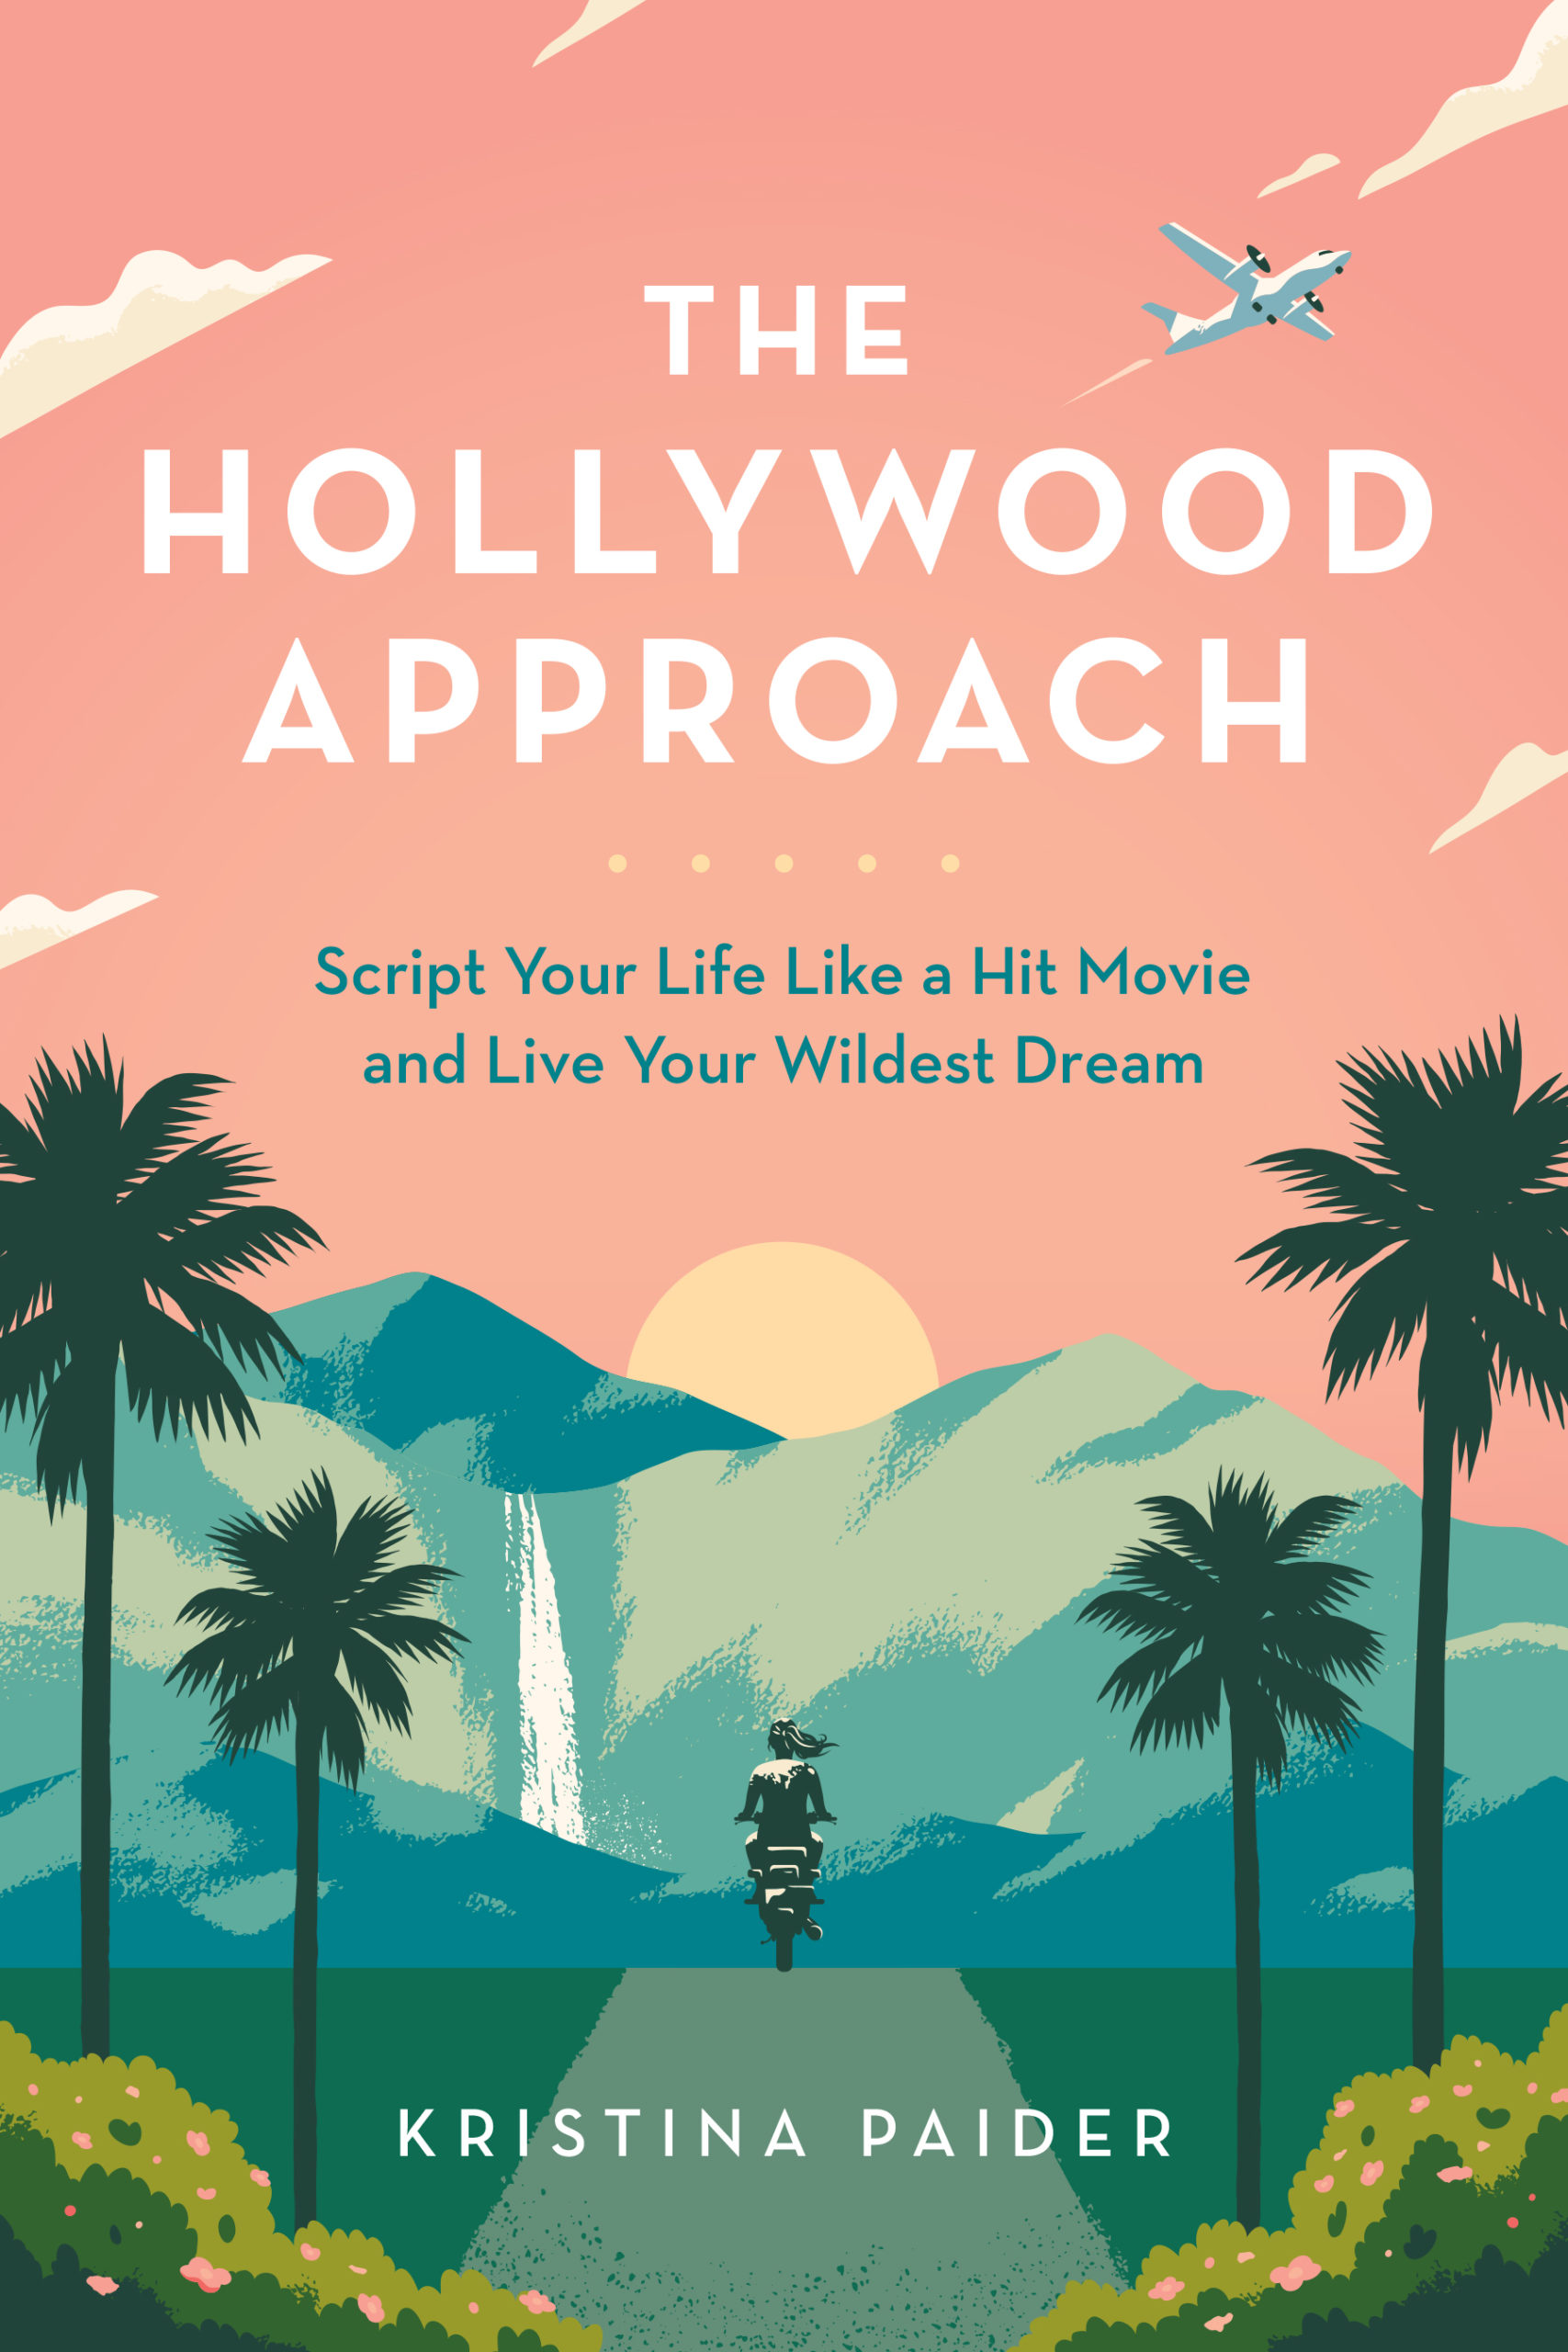 The Hollywood Approach